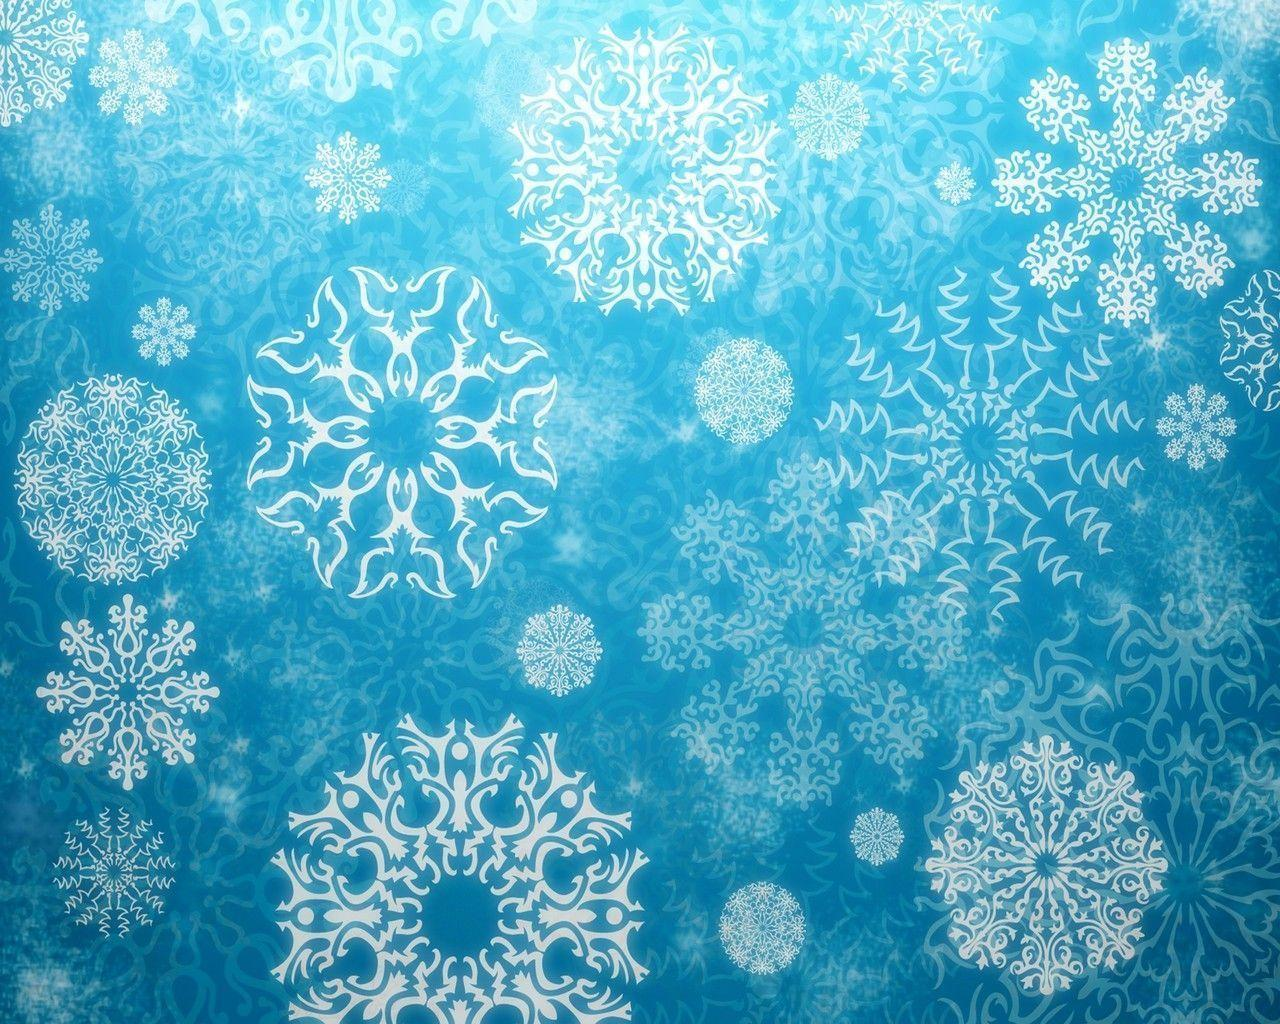 Snowflakes Wallpapers - Wallpaper Cave |Real Snowflakes Background